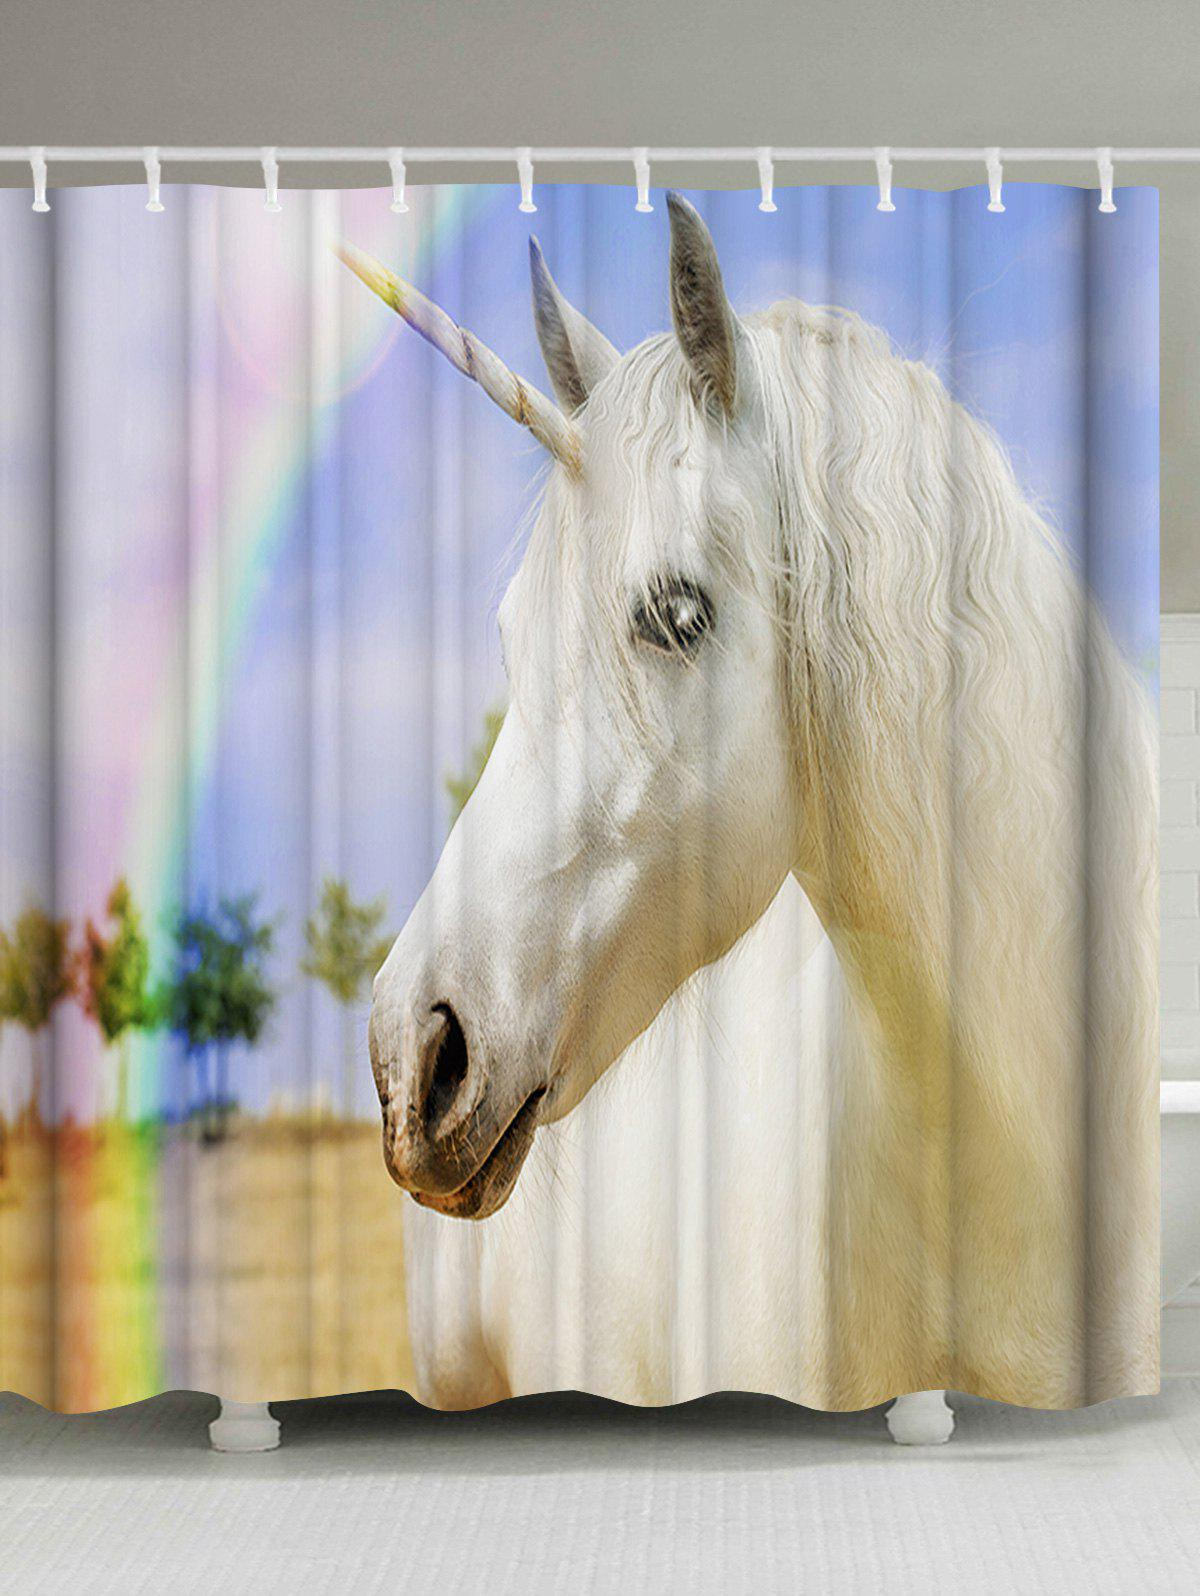 Rainbow Unicorn Animal Bathroom Shower Curtain